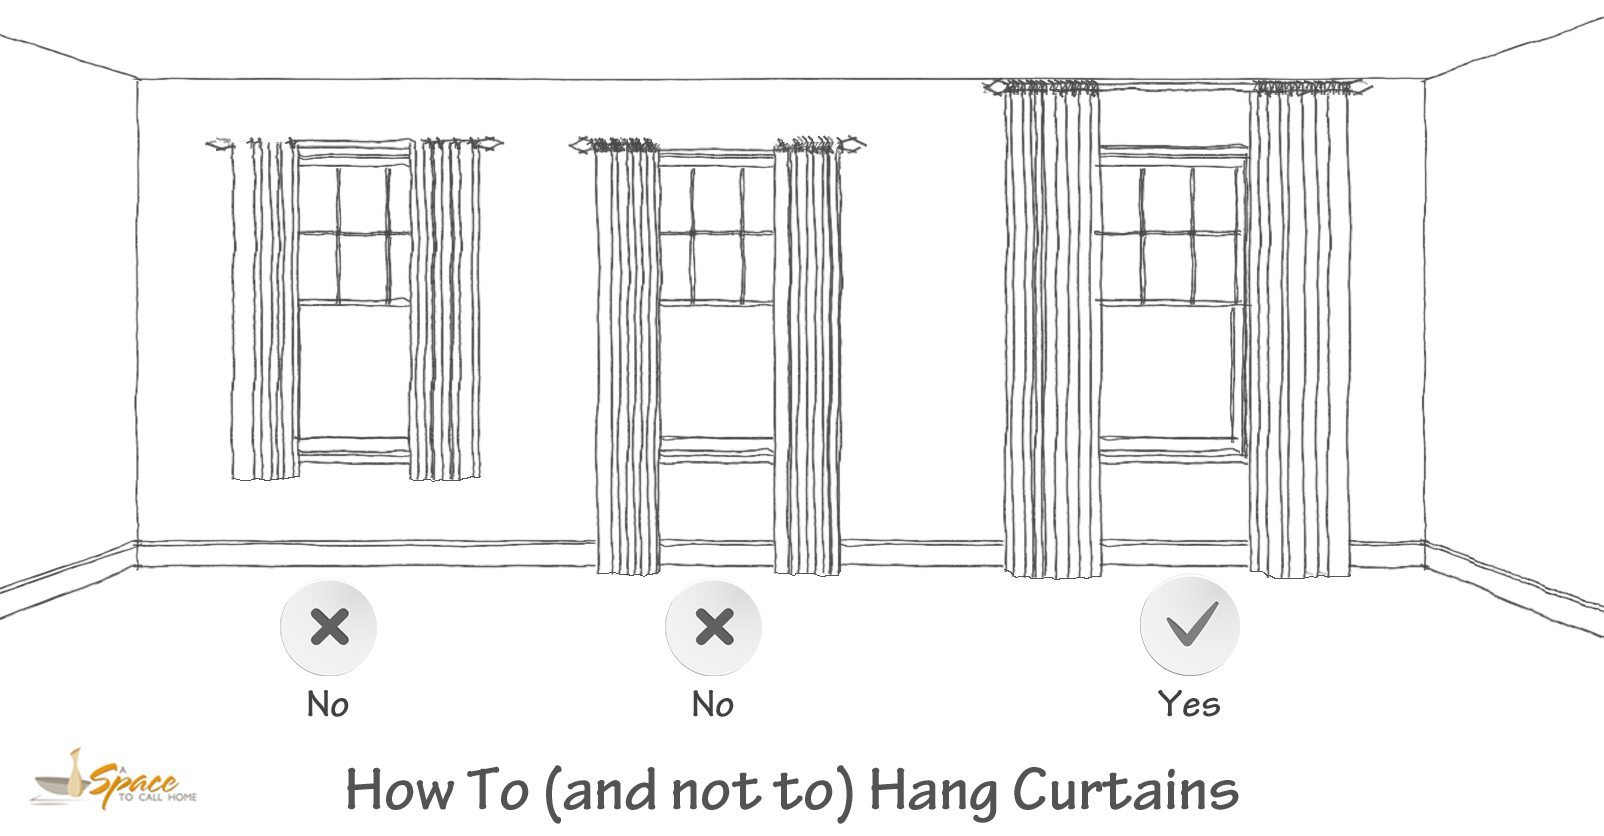 Design Tips Amp Tricks 4 How To Hang Curtains A Space